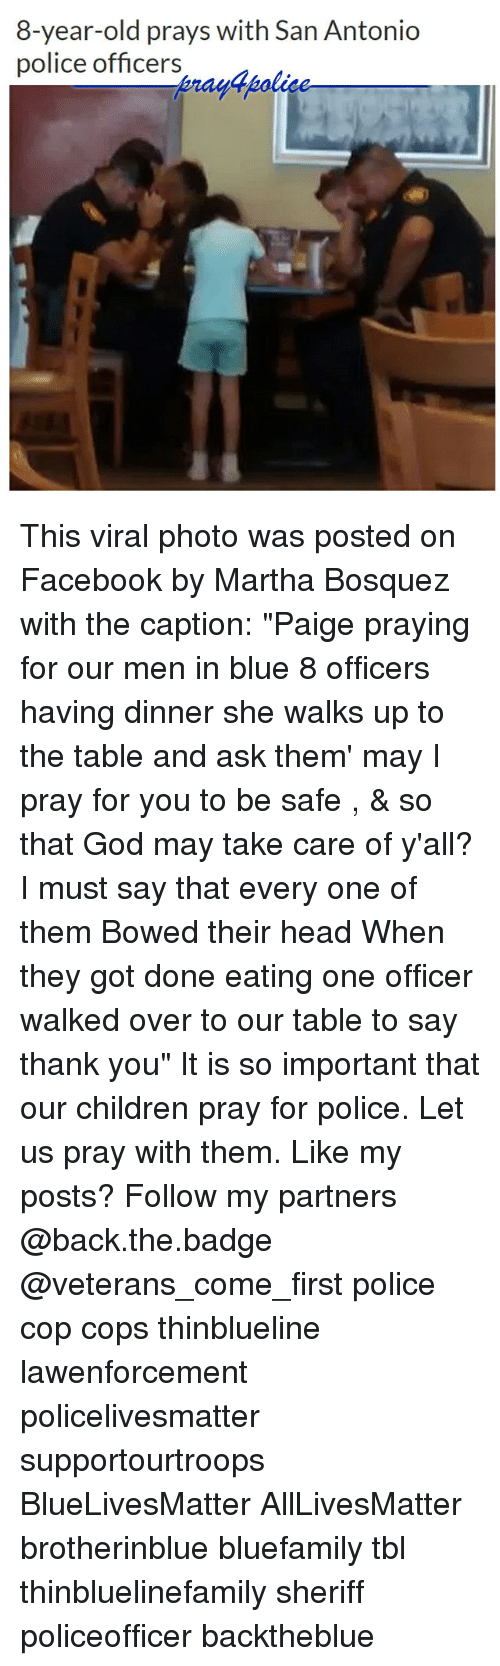 "bowed: 8-year-old prays with San Antonio  police officers This viral photo was posted on Facebook by Martha Bosquez with the caption: ""Paige praying for our men in blue 8 officers having dinner she walks up to the table and ask them' may I pray for you to be safe , & so that God may take care of y'all? I must say that every one of them Bowed their head When they got done eating one officer walked over to our table to say thank you"" It is so important that our children pray for police. Let us pray with them. Like my posts? Follow my partners @back.the.badge @veterans_сome_first police cop cops thinblueline lawenforcement policelivesmatter supportourtroops BlueLivesMatter AllLivesMatter brotherinblue bluefamily tbl thinbluelinefamily sheriff policeofficer backtheblue"